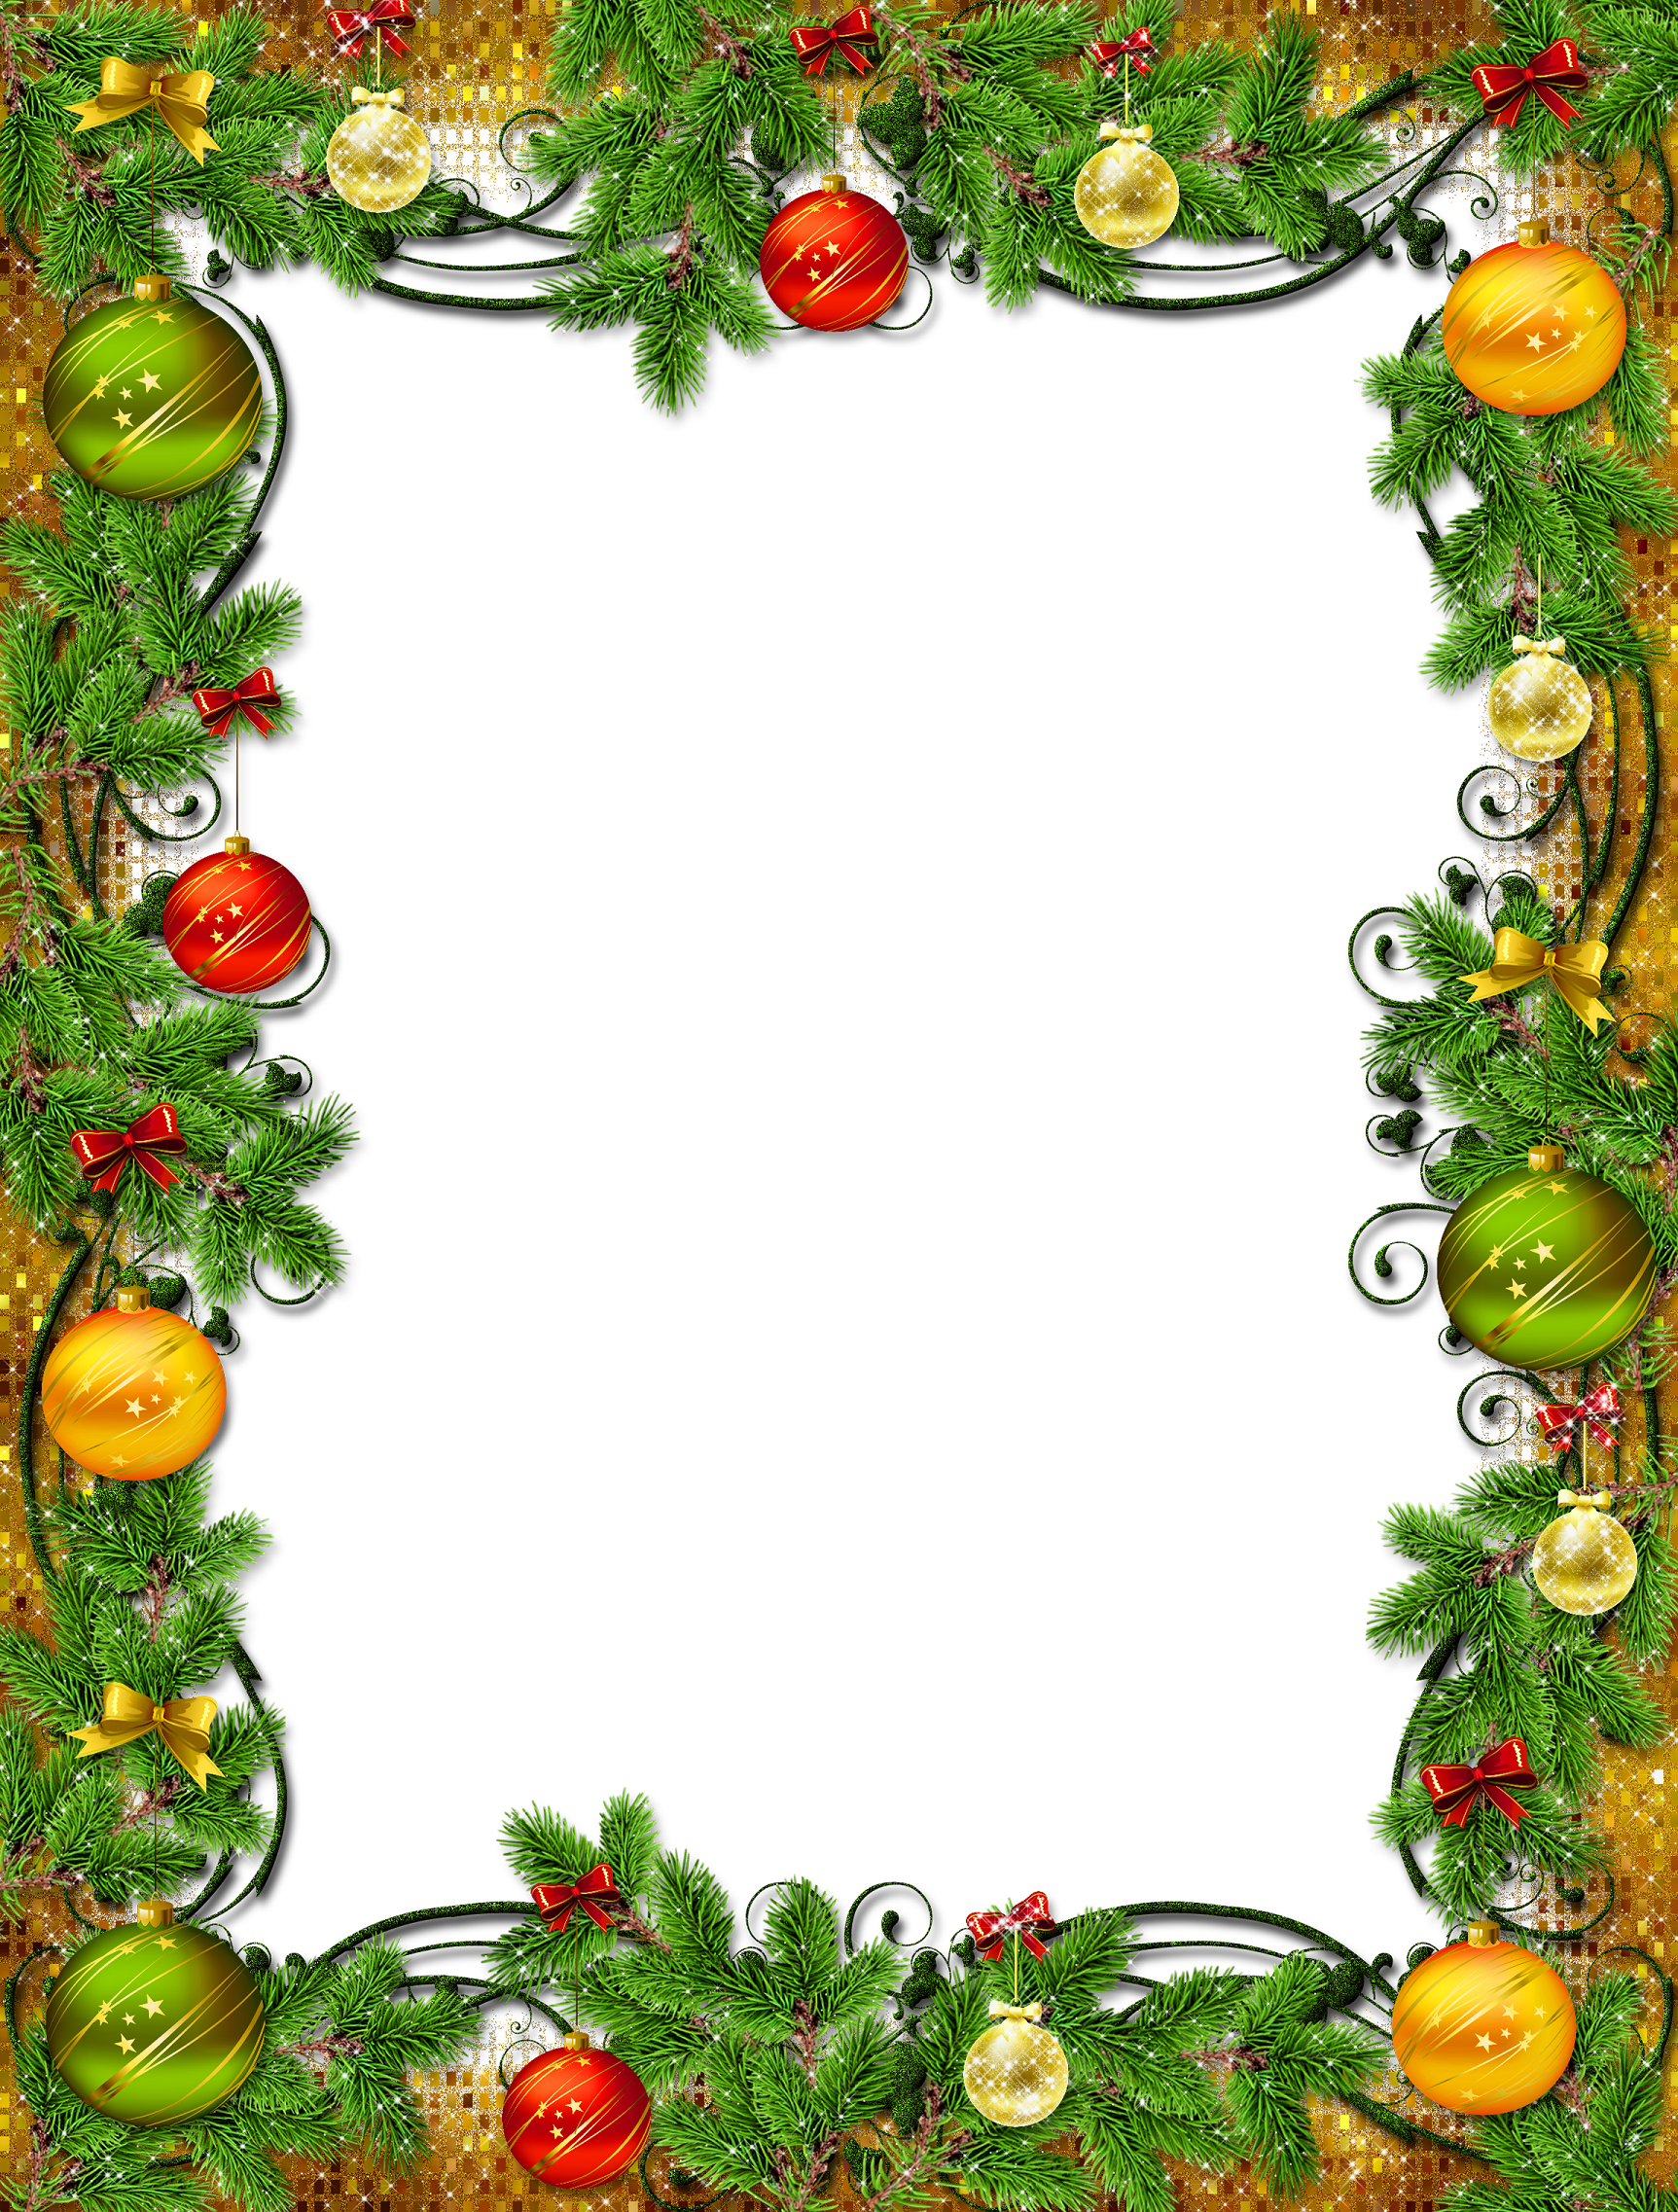 Christmas frame with ornaments and pine | Clip Art Holiday Scrapbook ...